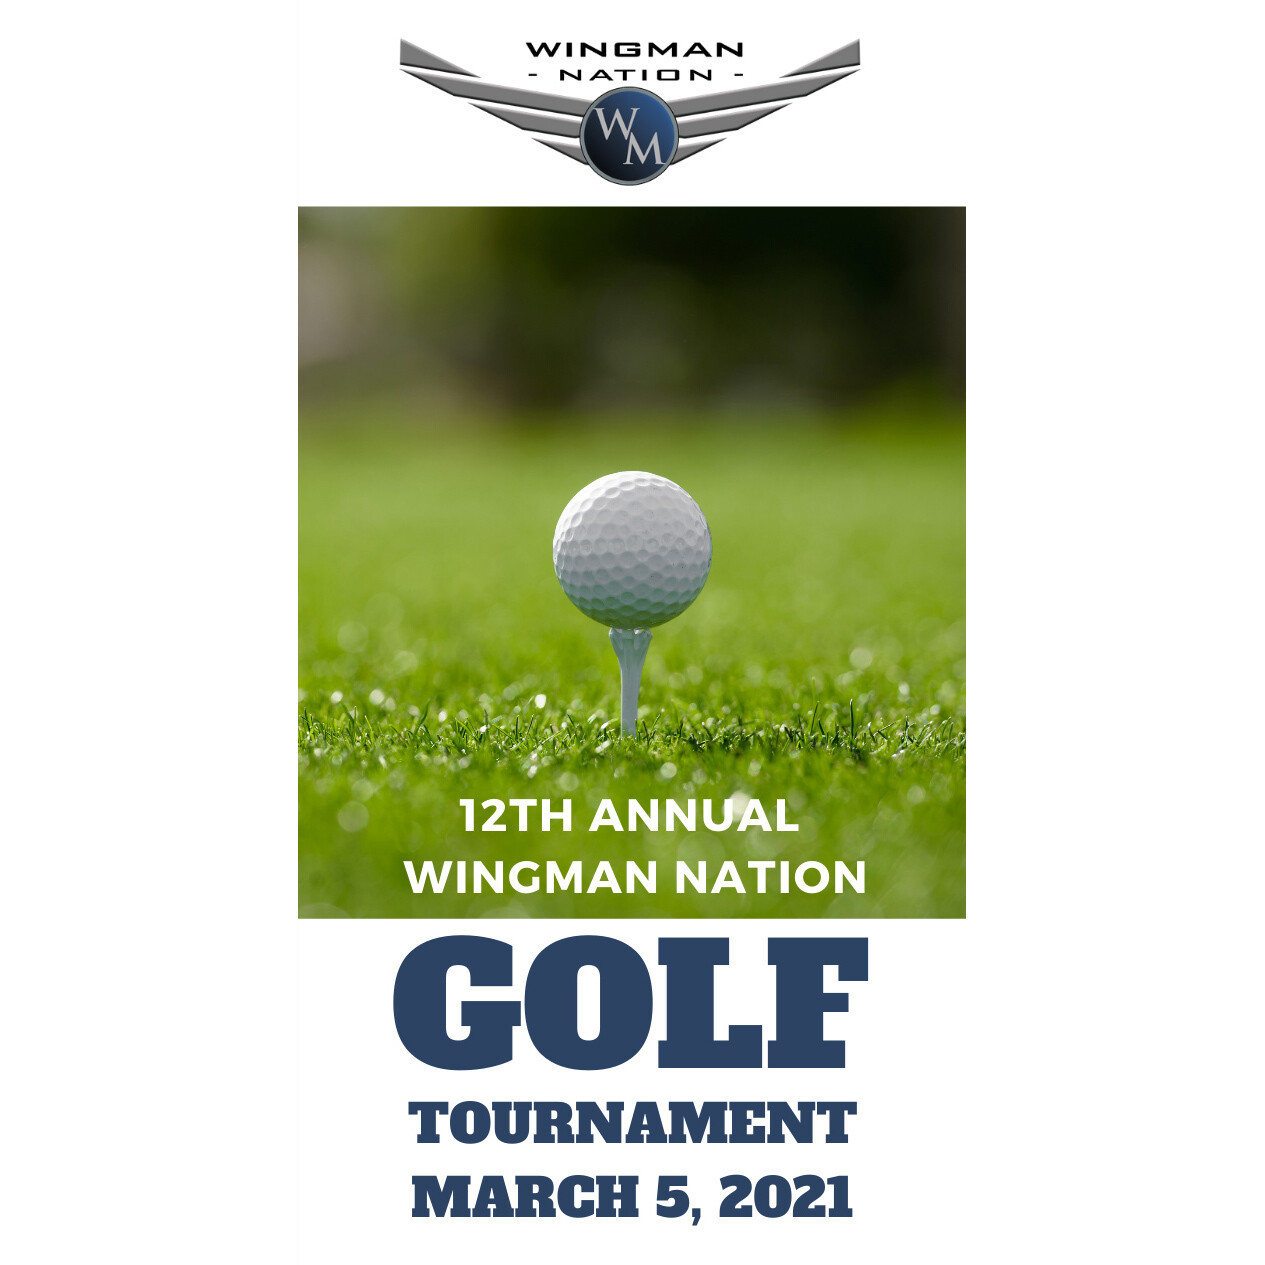 12th Annual Wingman Nation Golf Tournament - Gold Sponsorship